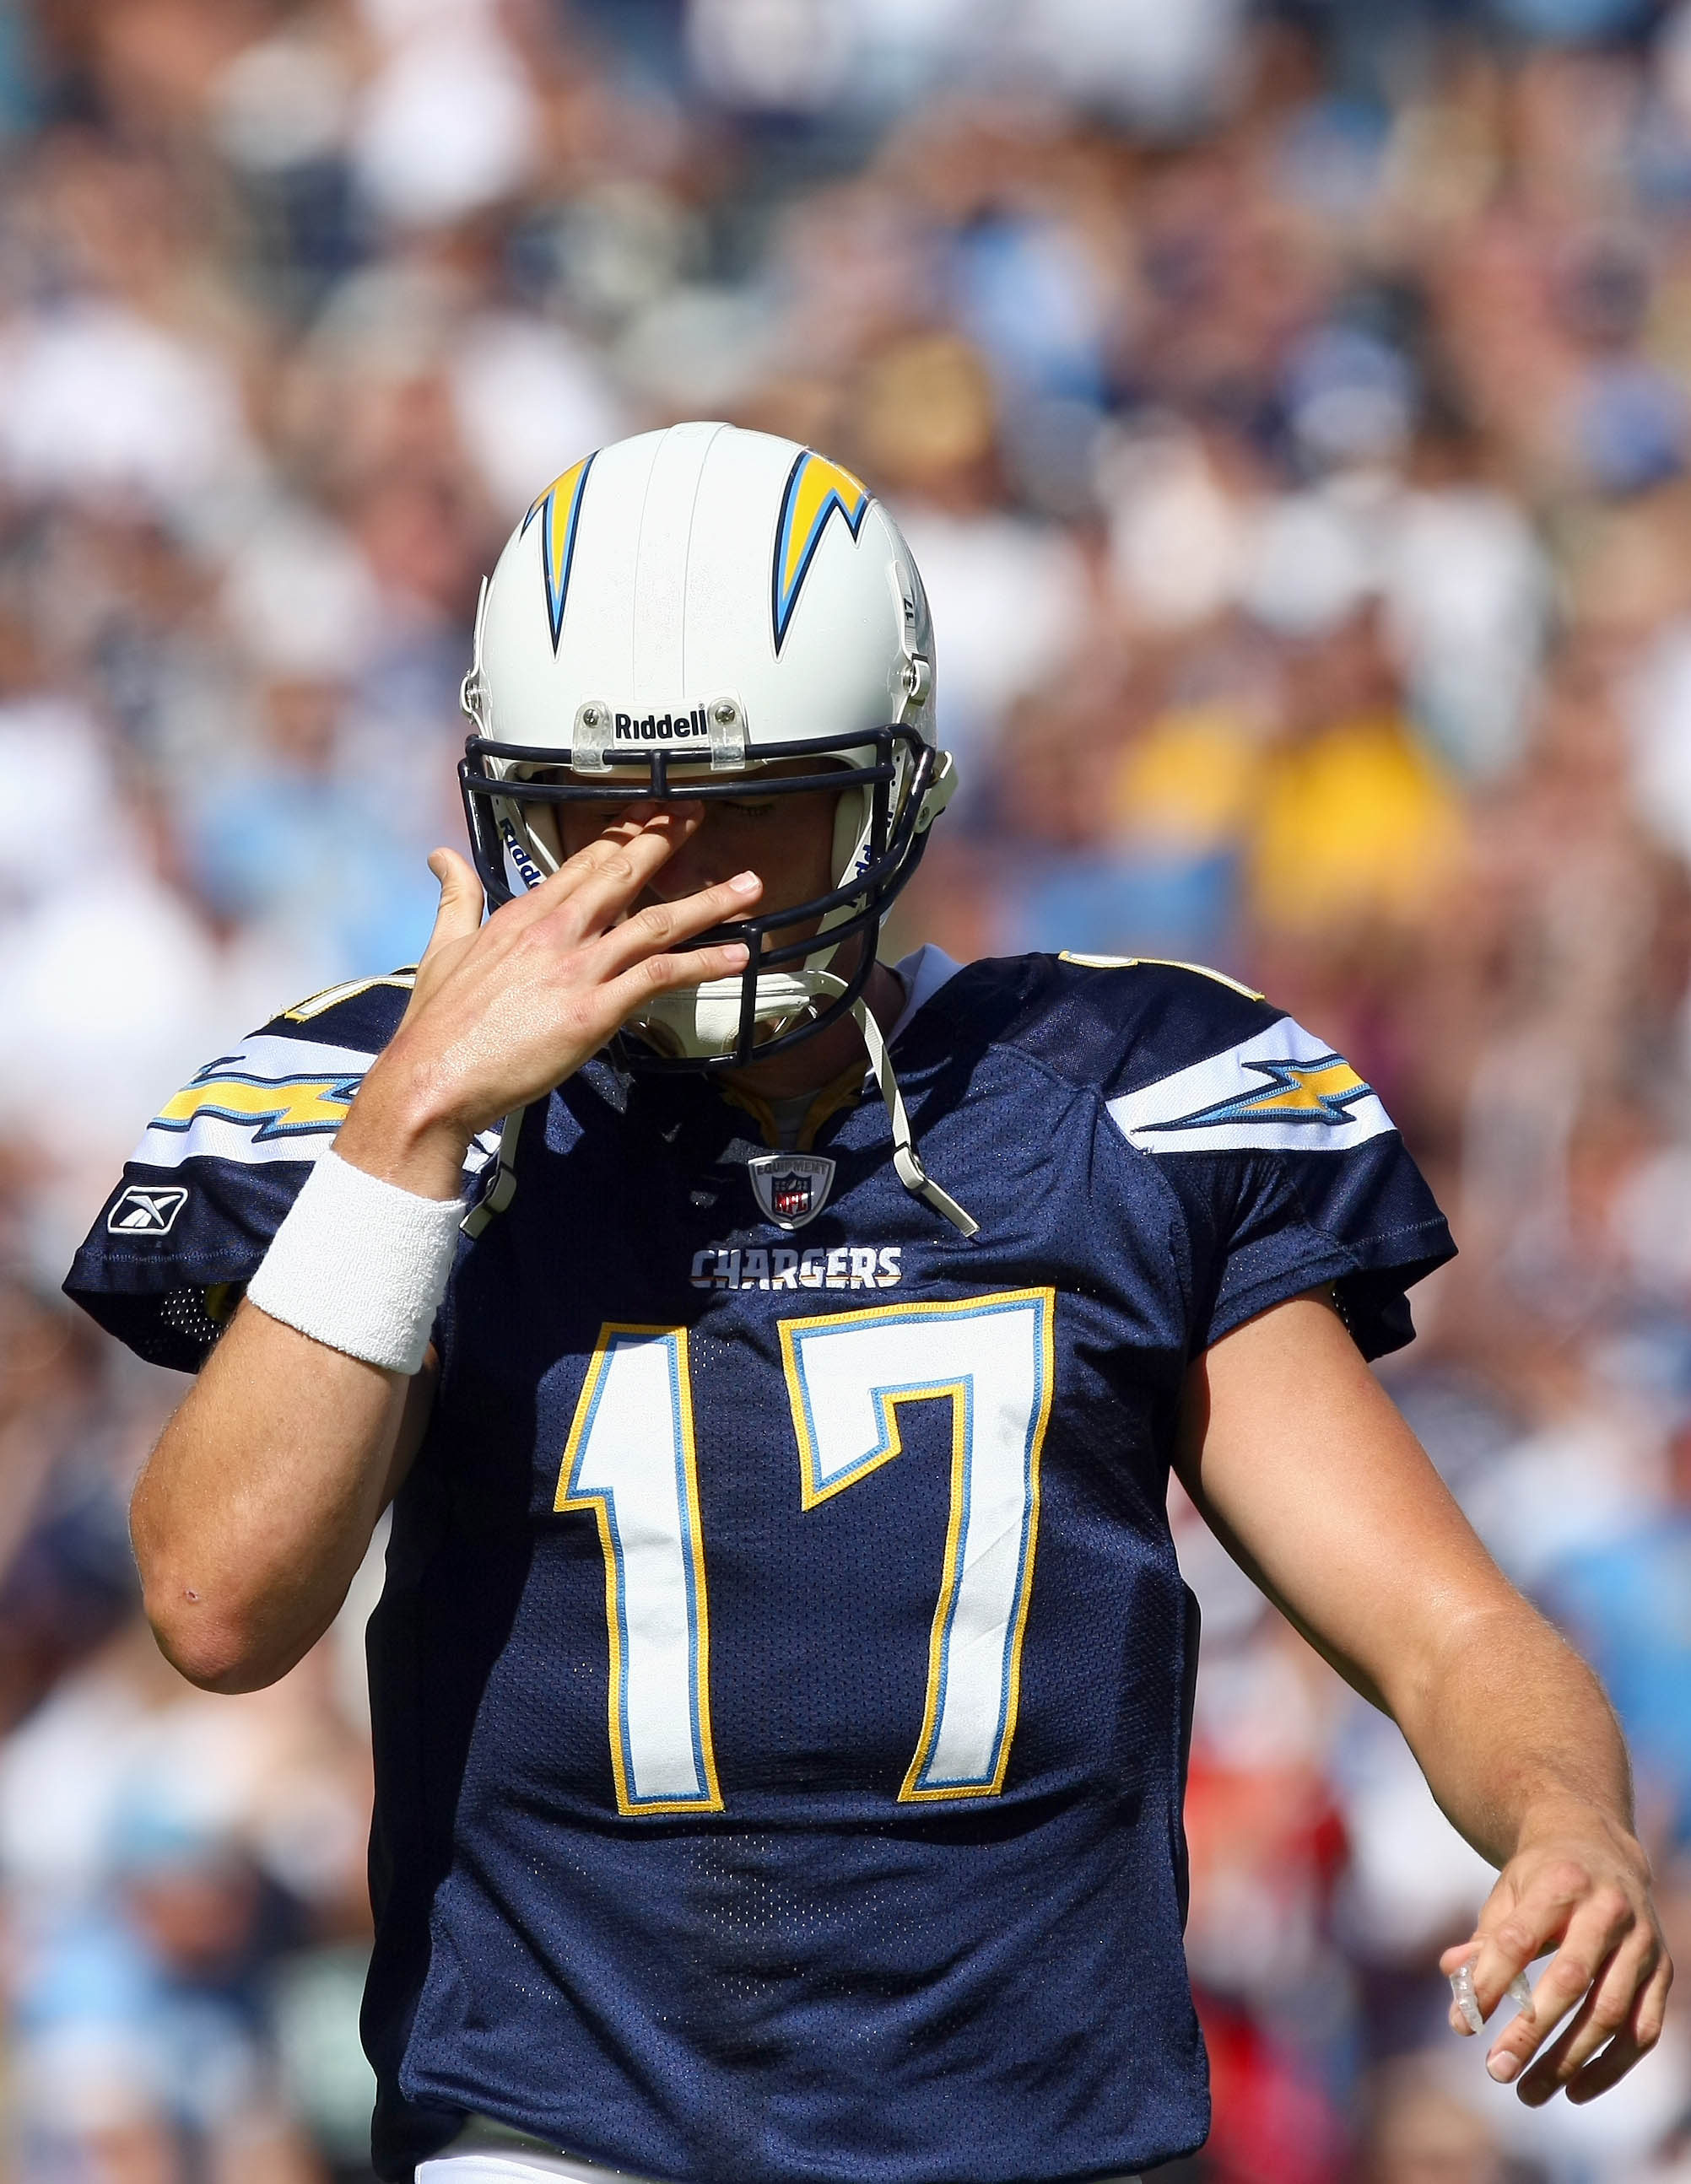 SAN DIEGO - OCTOBER 24:  Quarterback Philip Rivers #17 of the San Diego Chargers reacts to turning over the ball against the New England Patriots during the first half of their NFL game on October 24, 2010 at Qualcomm Stadium in San Diego, California. (Ph